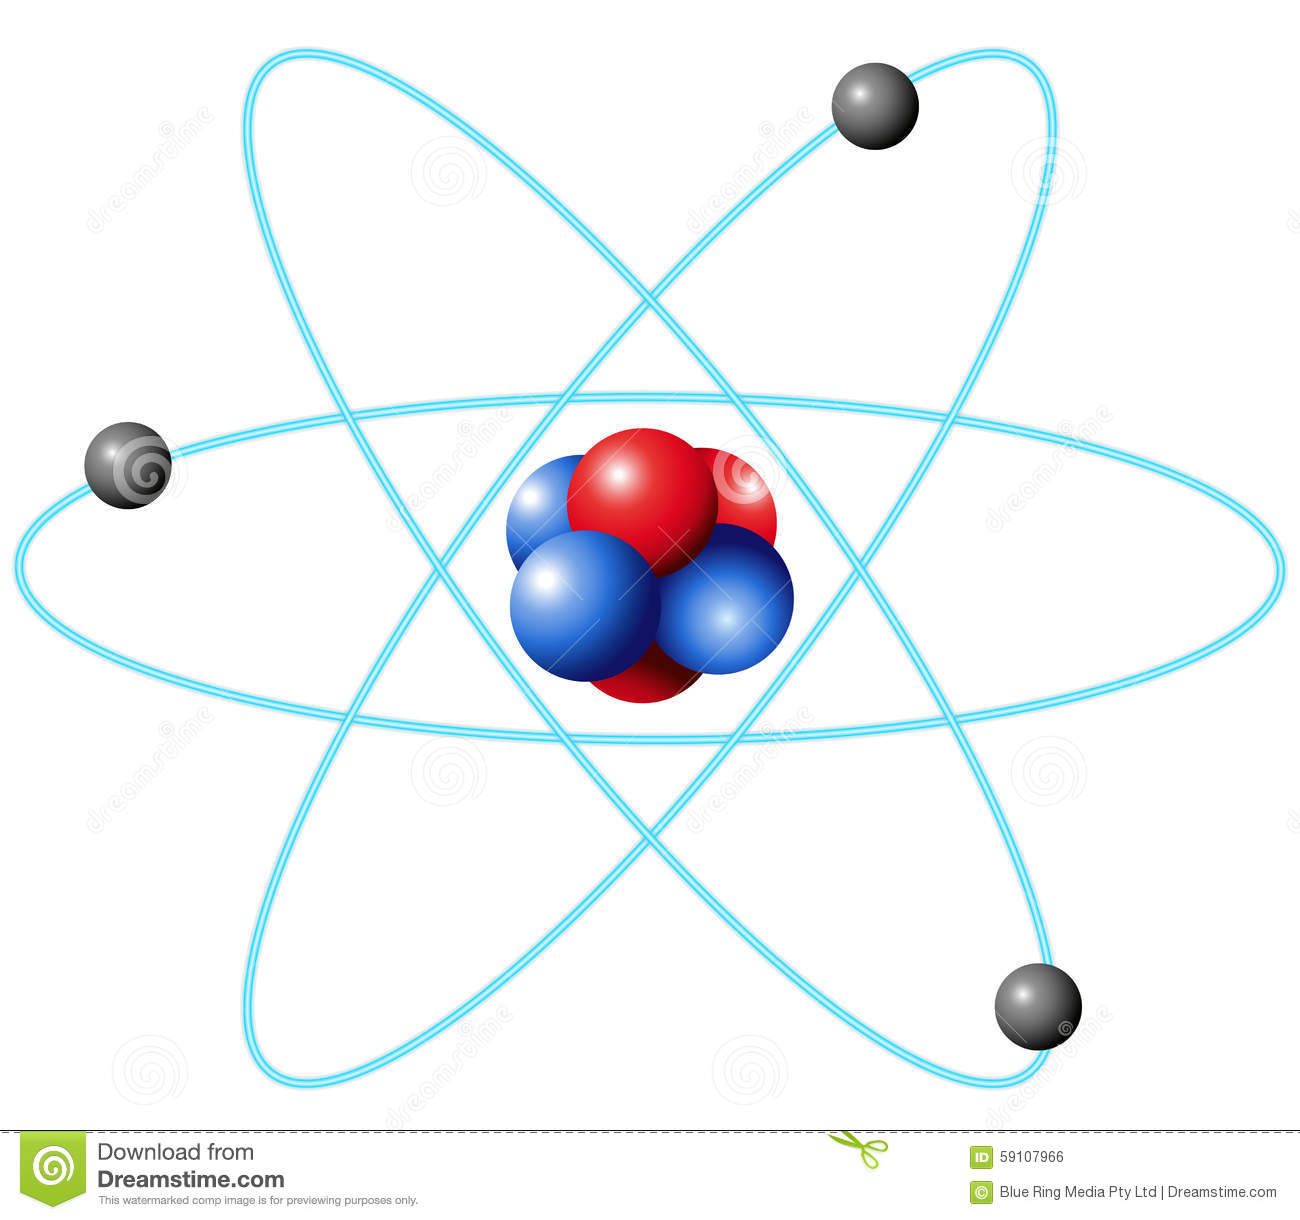 Hydrogen Atomic Structure Diagram For All Kind Of Wiring Diagrams Oxygen Atom Stock Photo Helium 3d Number Elsavadorla An Atoms And Elements